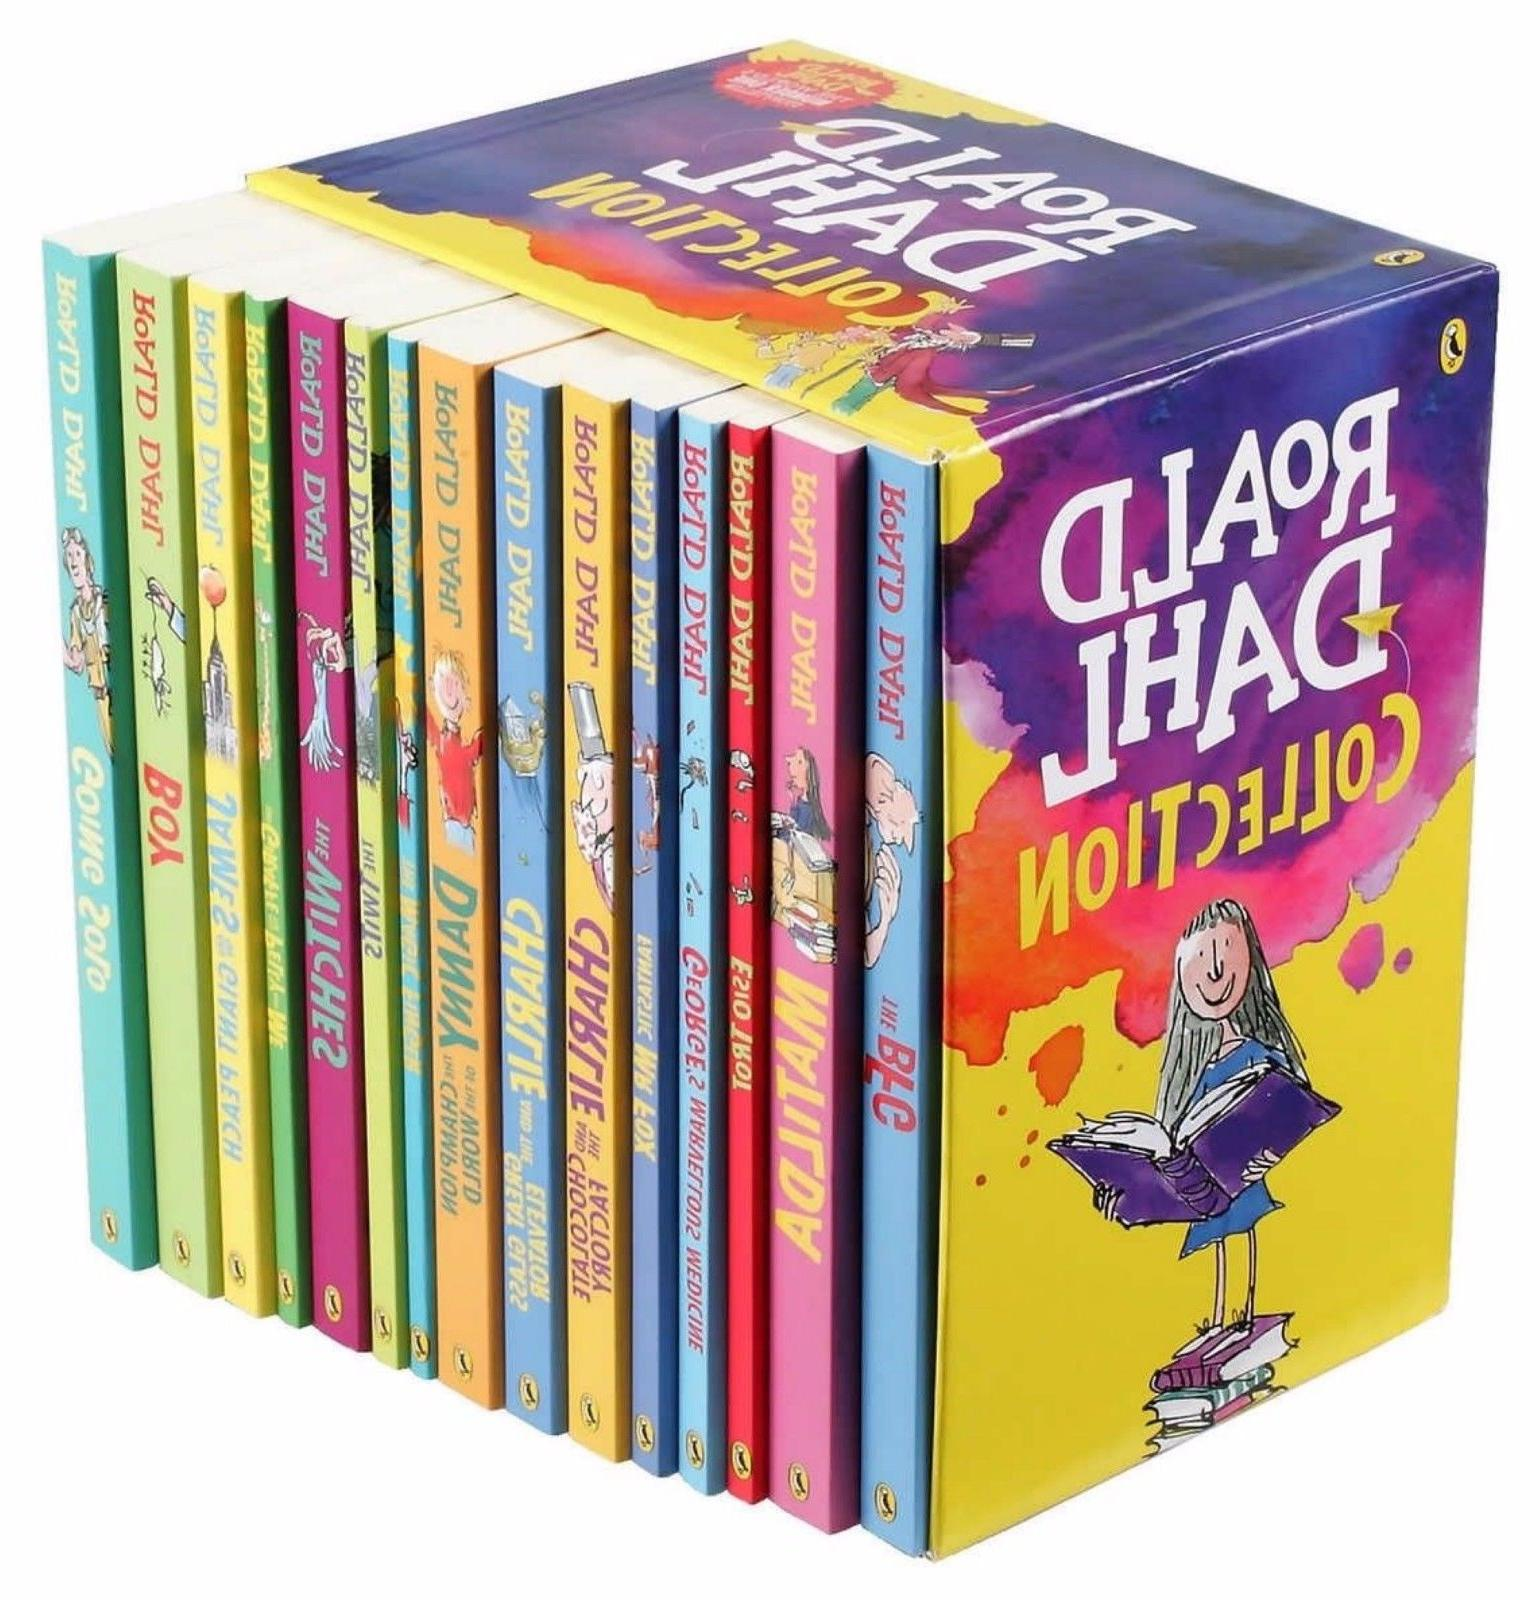 Roald Dahl Collection 15 Paperback Books Gift Set - New